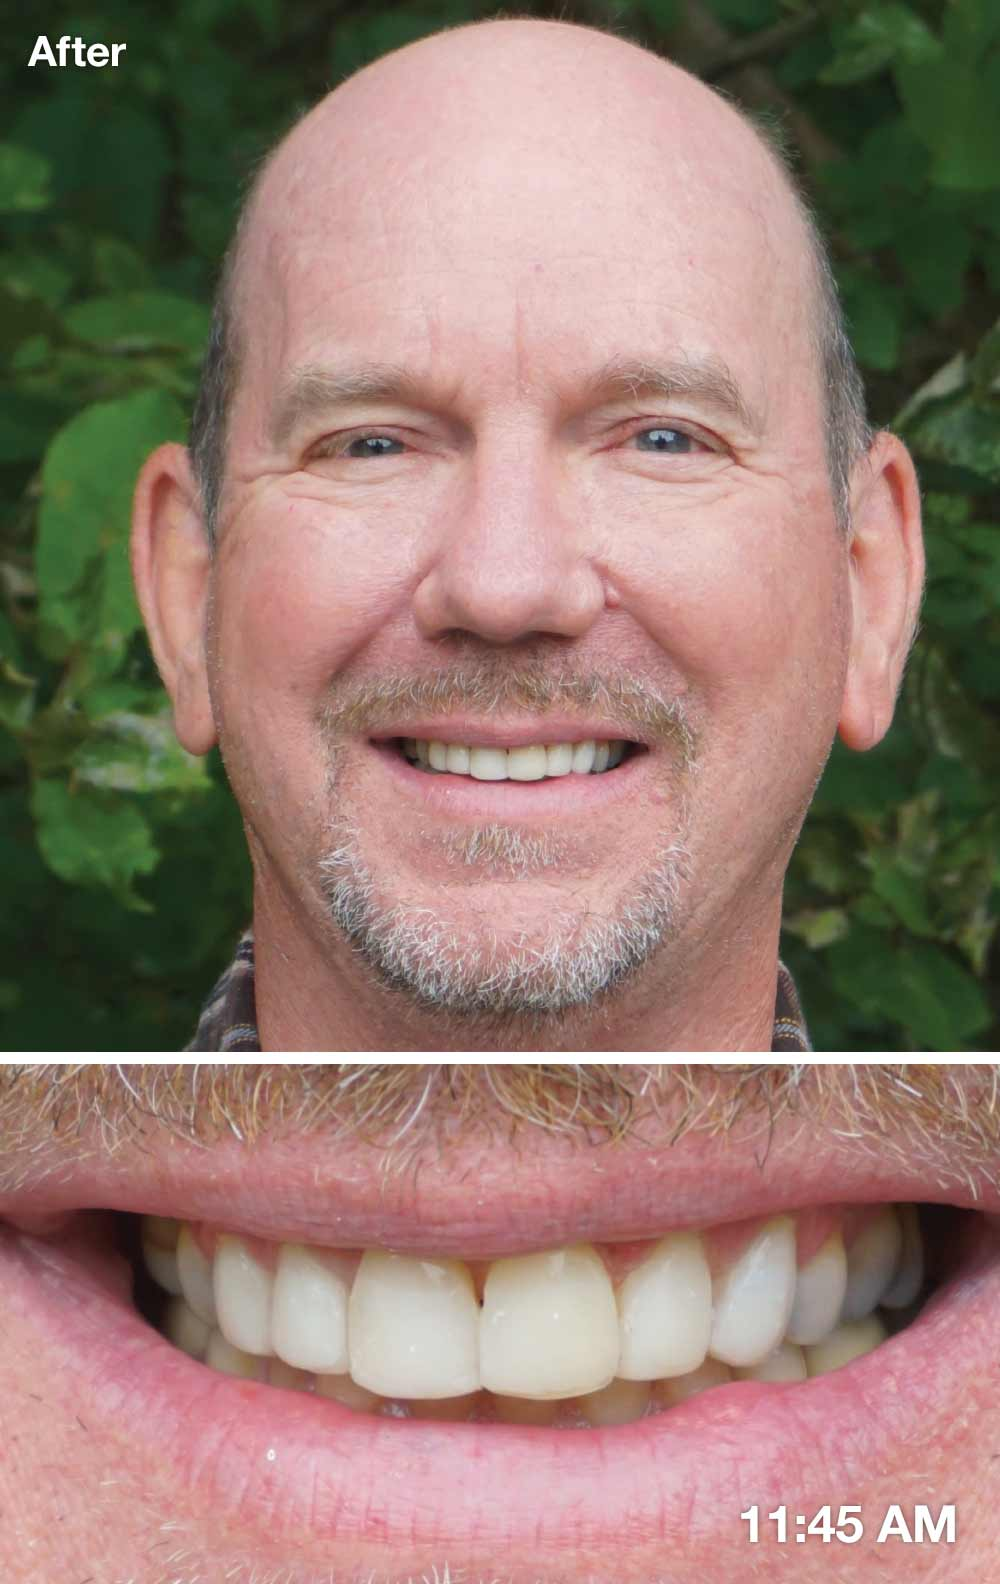 After direct veneers.